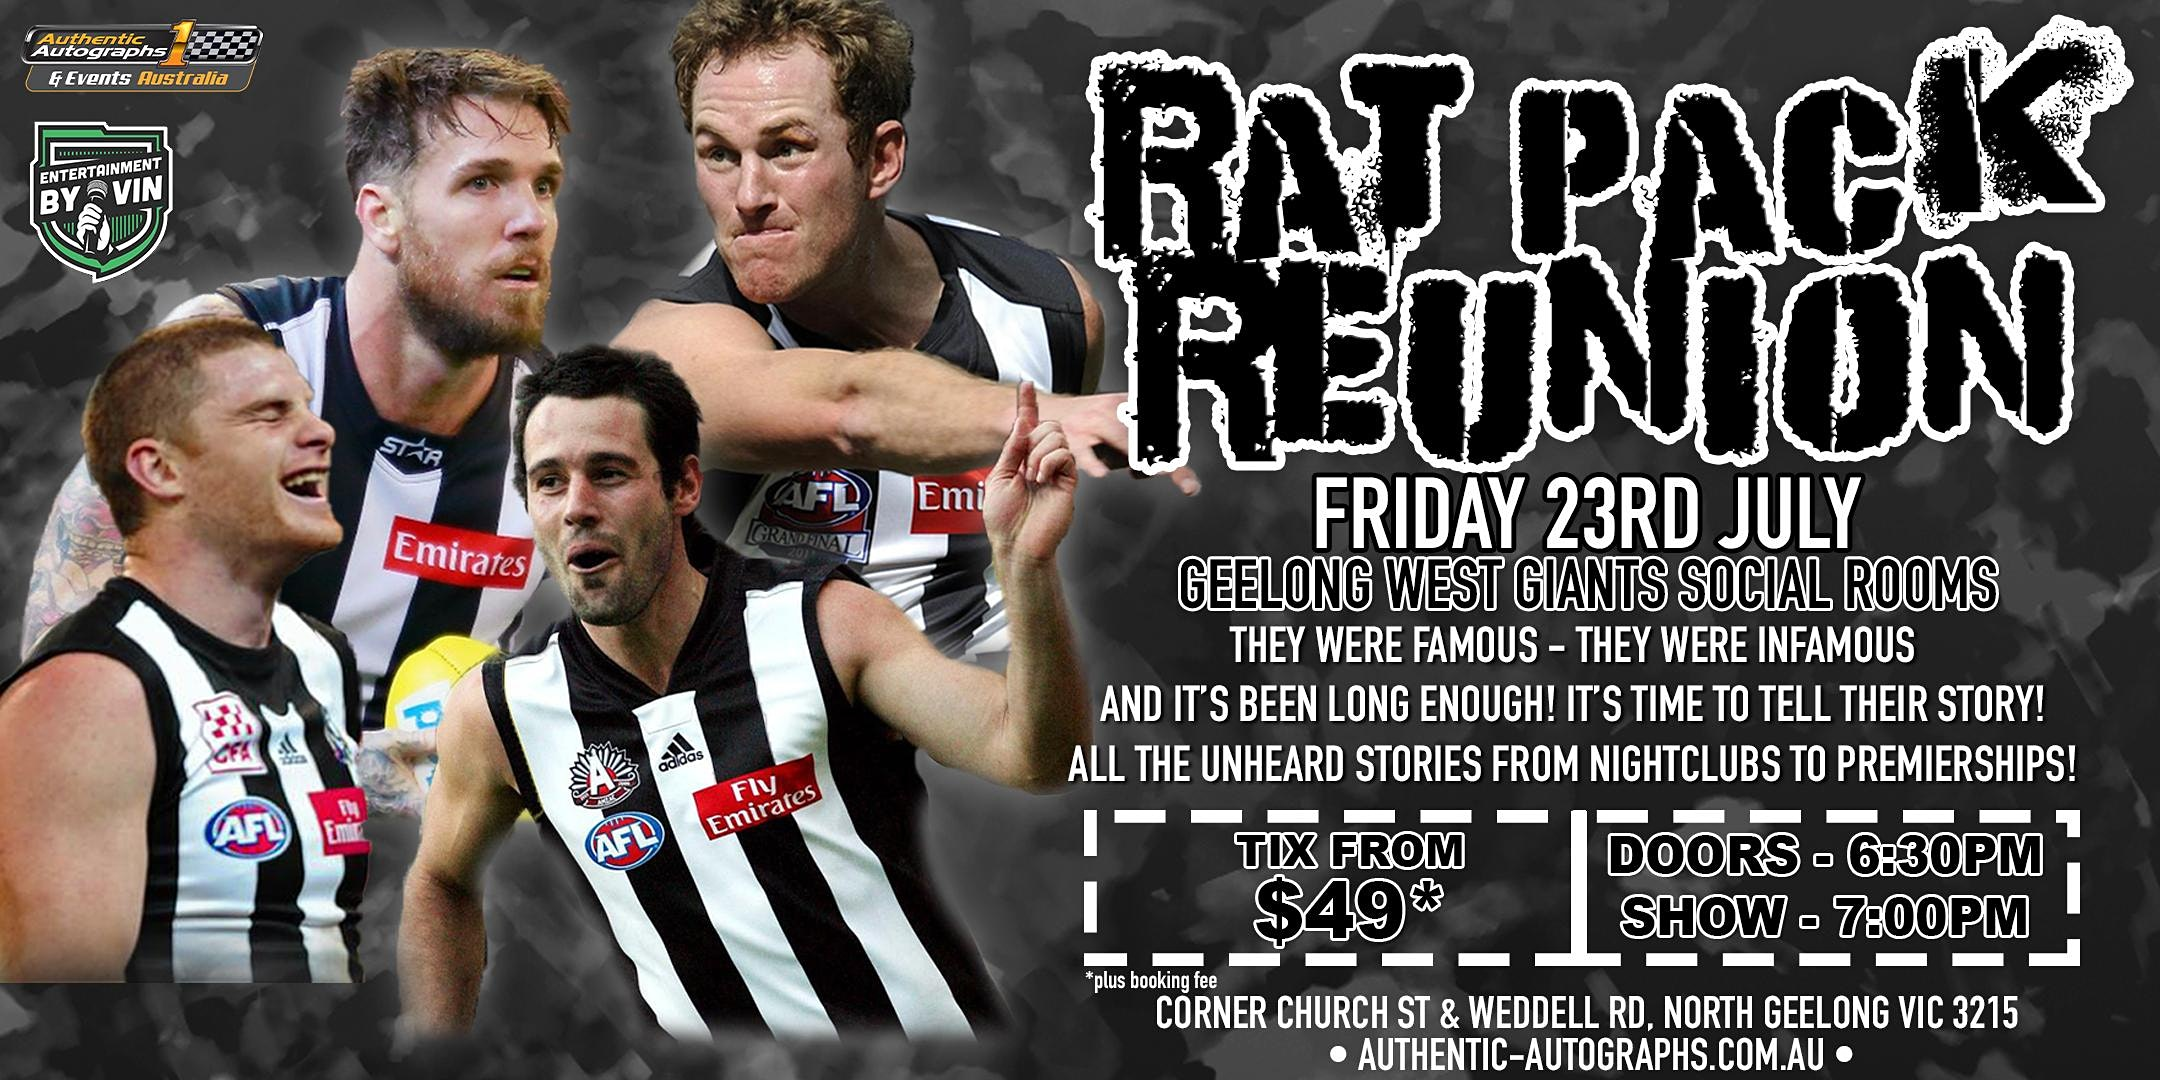 'The Rat Pack' @ The Geelong West Giants Social Rooms!